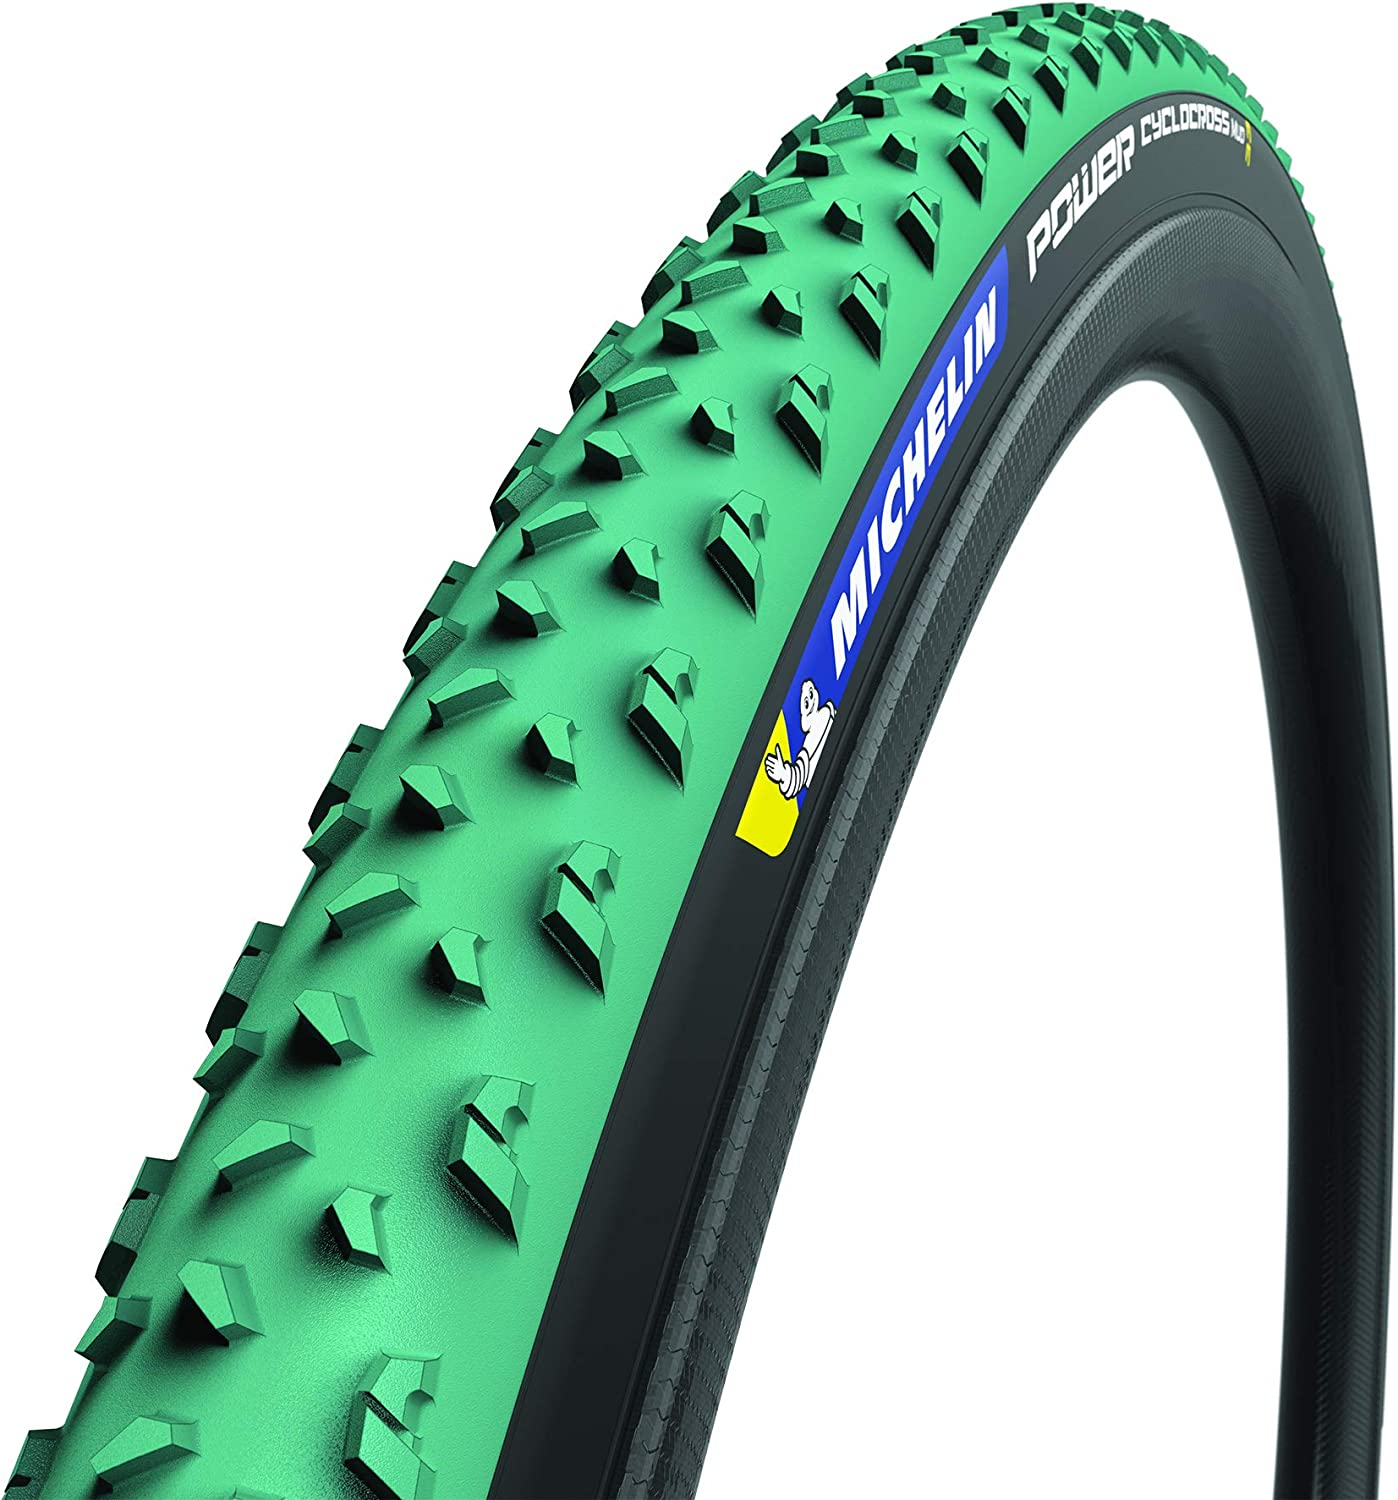 2x MICHELIN TYRES Power Cyclocross Mud Folding 28 inch 700x33C 33-622mm TLR Green